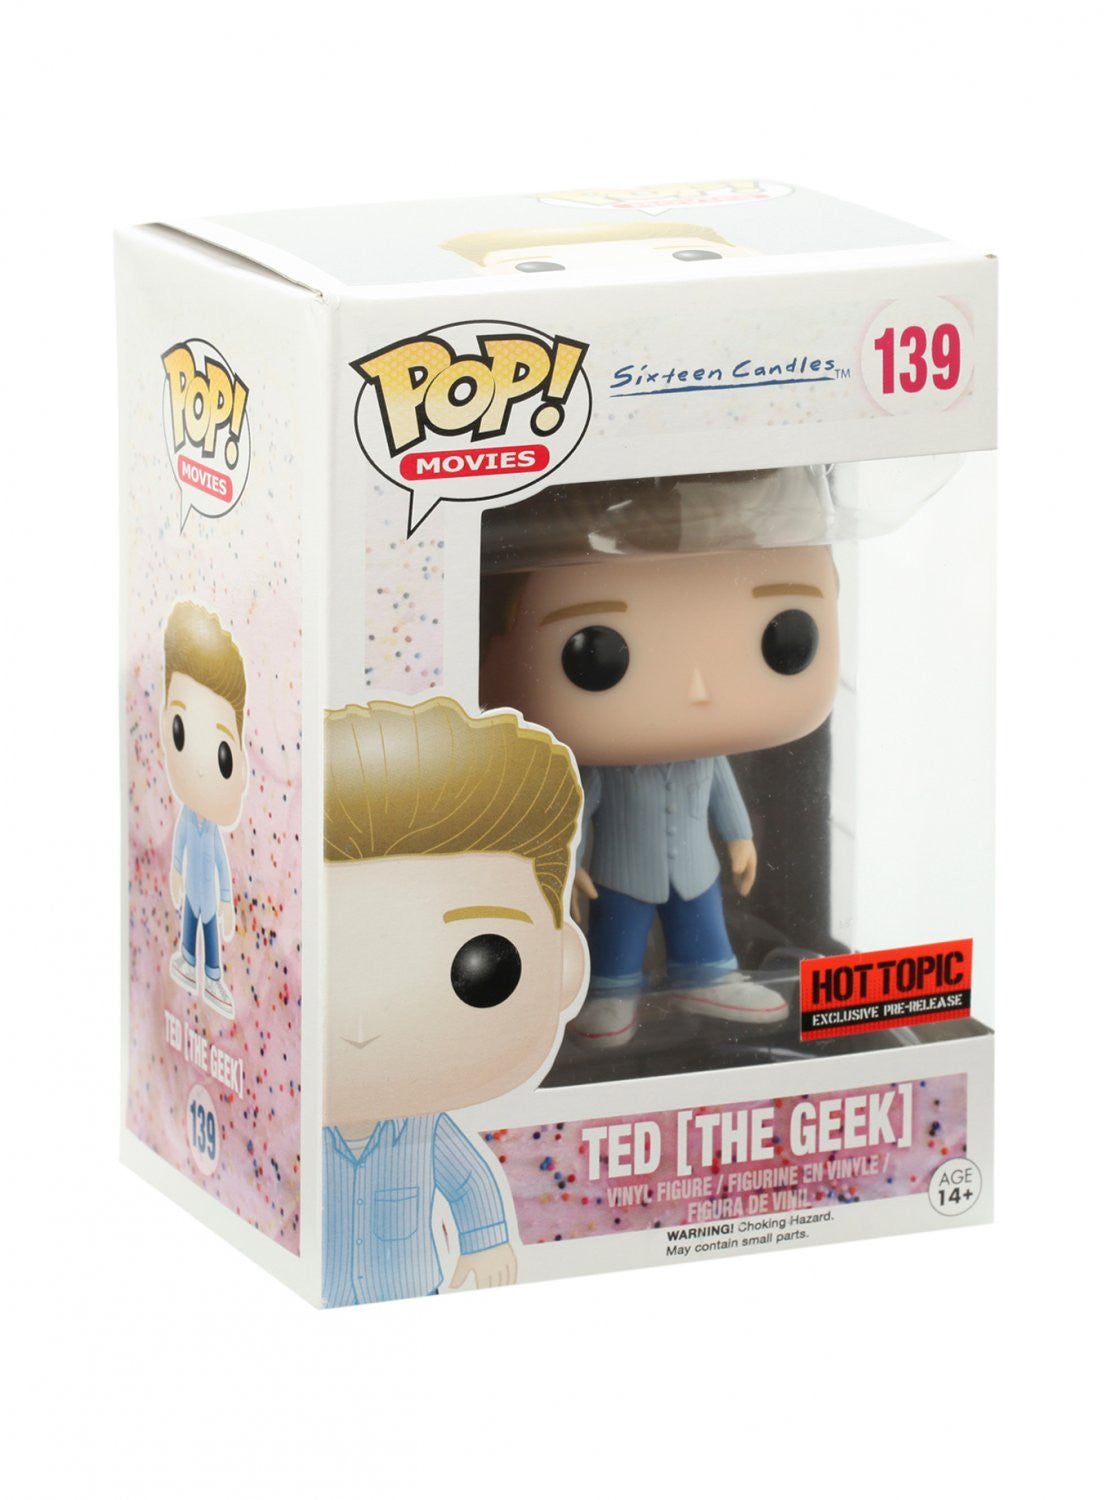 Ted [The Geek] (Hot Topic Exclusive Pre-Release) | SKYFOX GAMES